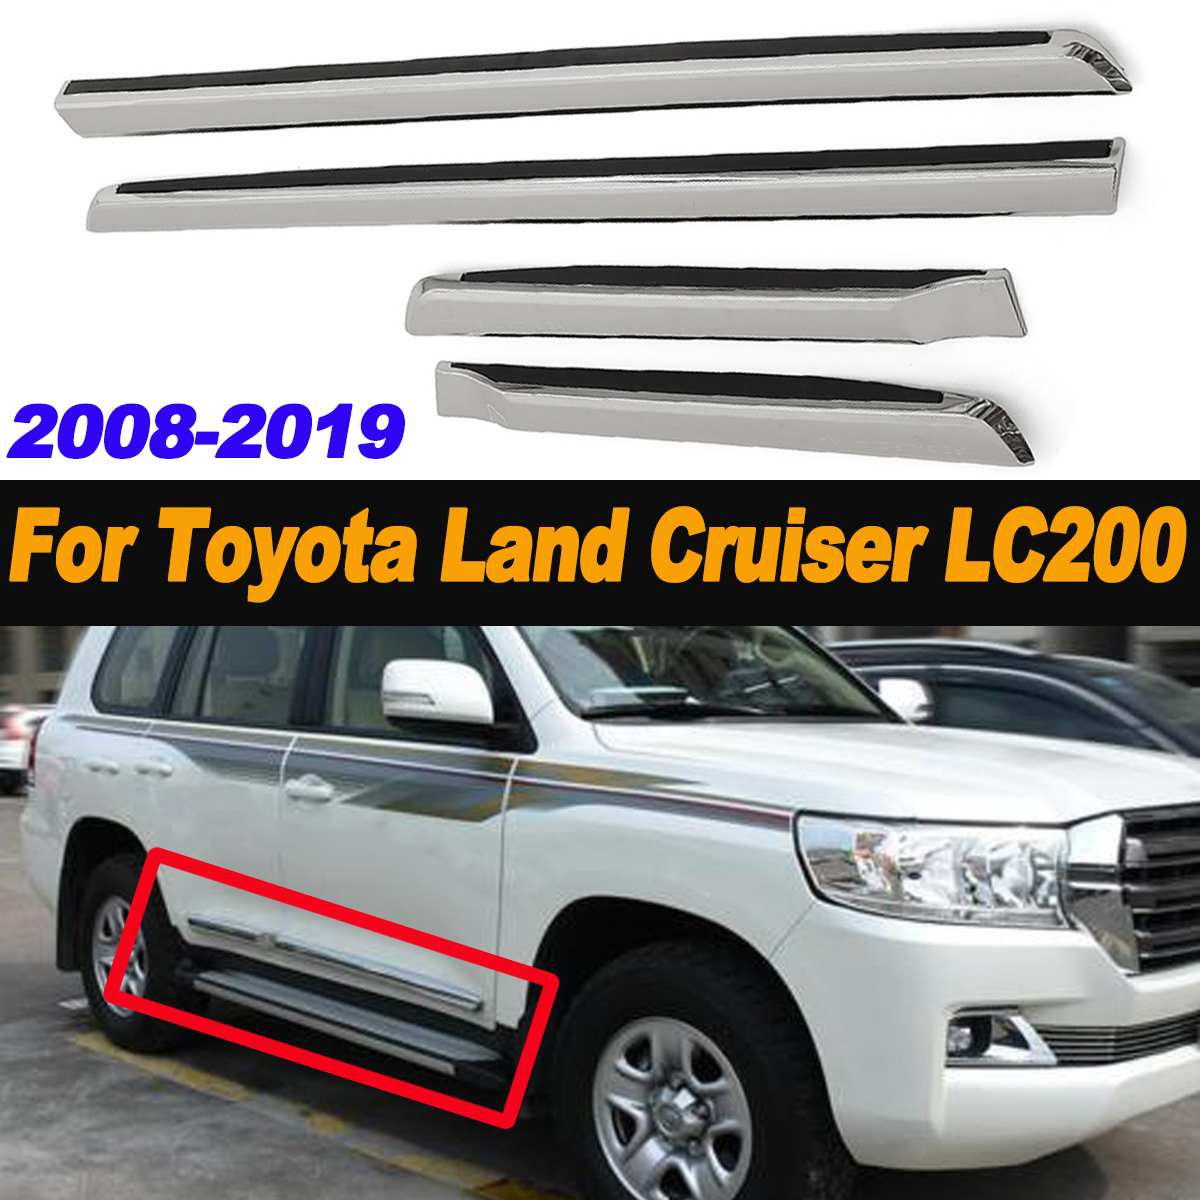 4pcs Chrome Door Side Molding ABS Car Body Line Trim for Toyota for Land Cruiser LC200 2008-2019 Chrome Styling4pcs Chrome Door Side Molding ABS Car Body Line Trim for Toyota for Land Cruiser LC200 2008-2019 Chrome Styling